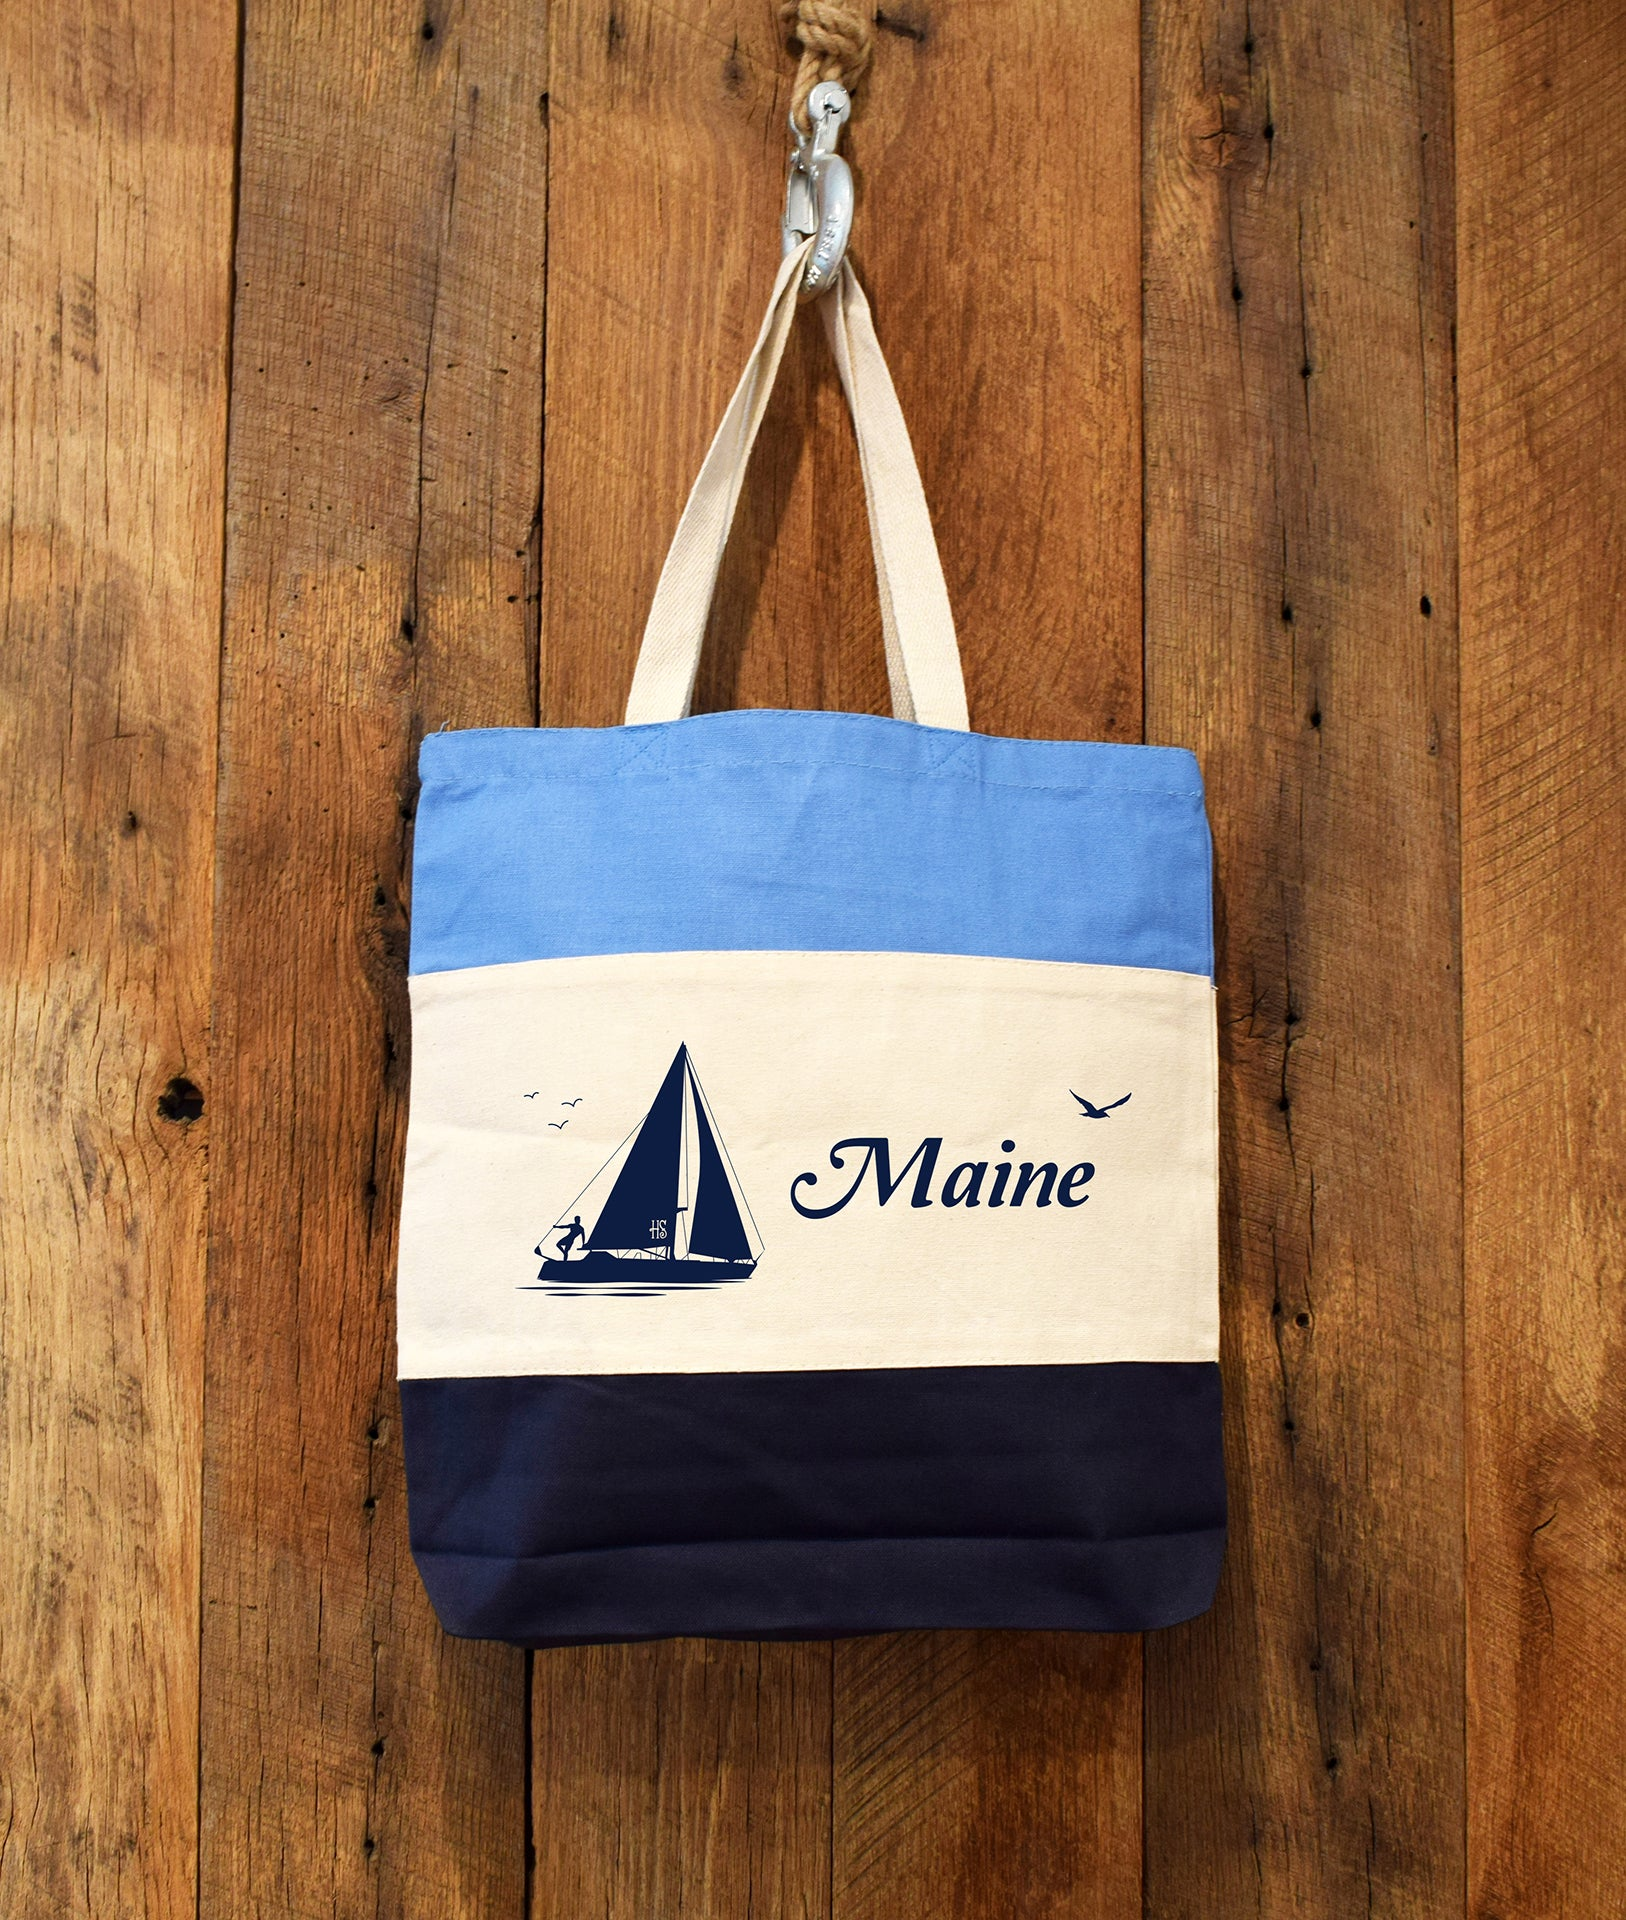 Maine sailboat tote bag